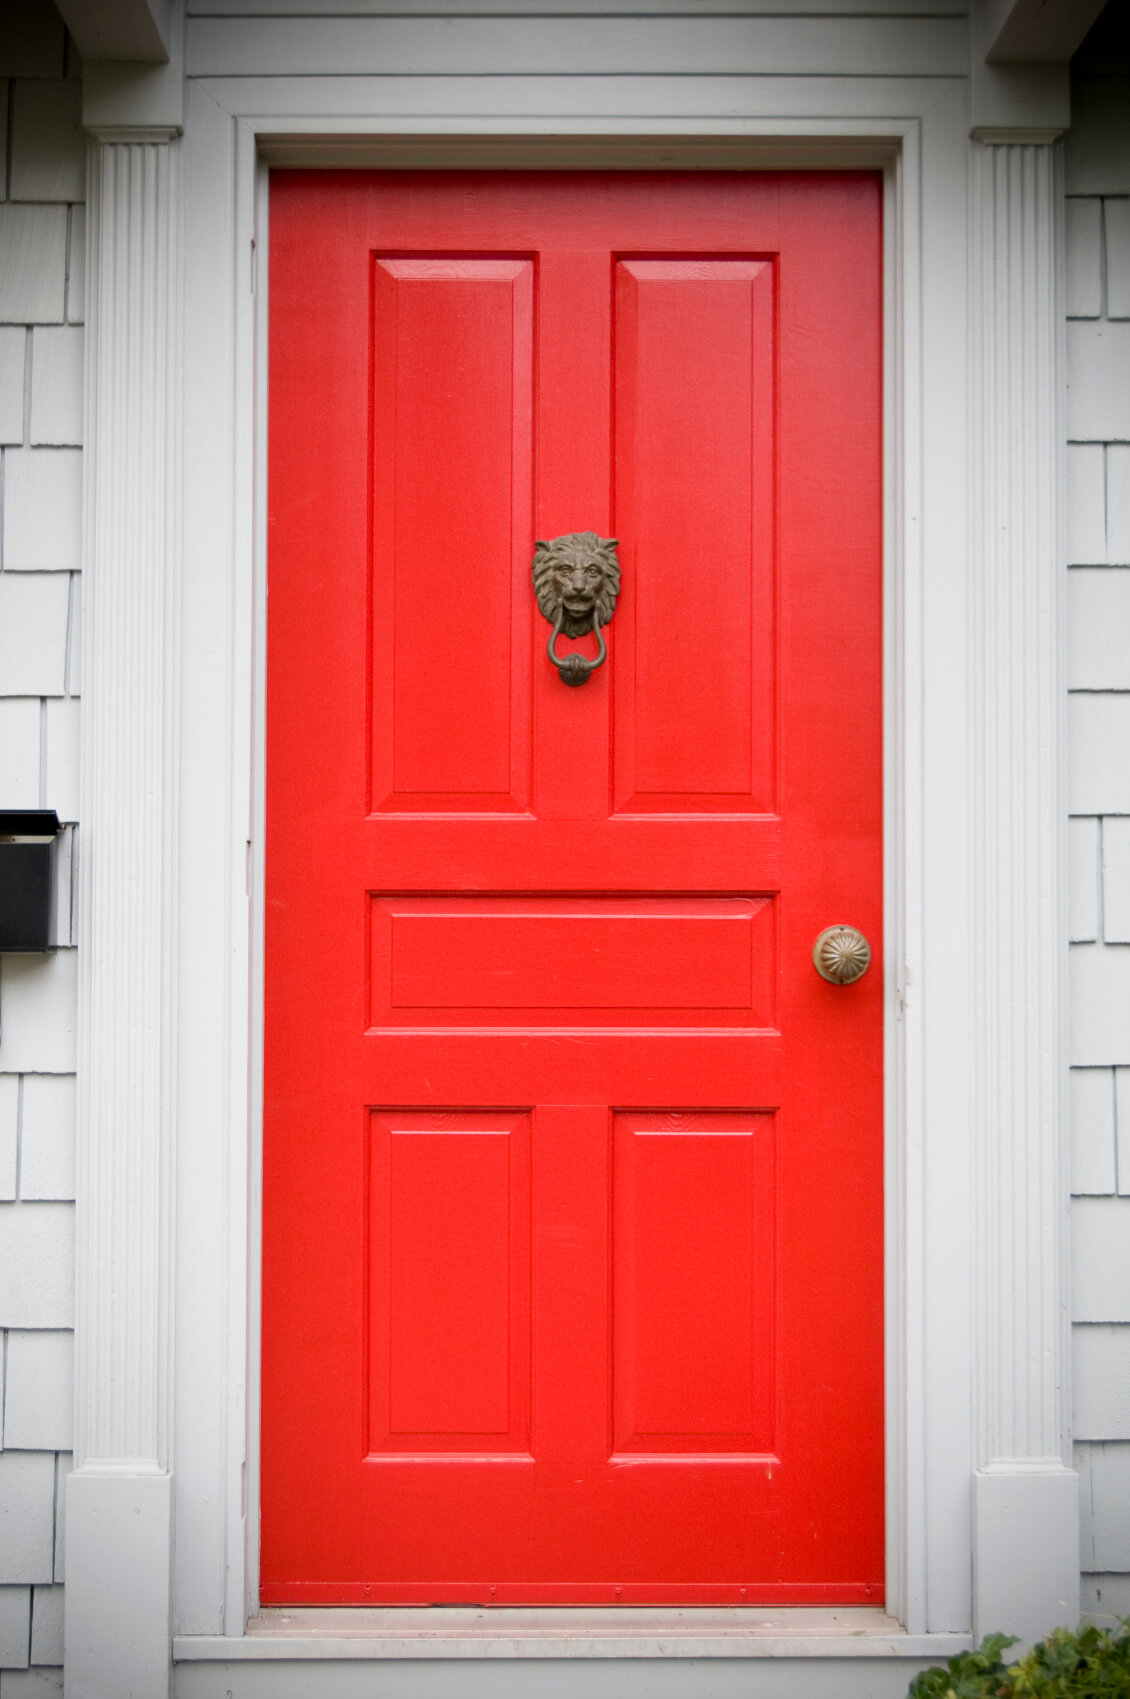 Off-white molding and framing support this bright red door, which has five rectangular panels and features a bronze doorknocker and a bronze doorknob. A black mailbox fixed to the wall is placed at the left side of the door.